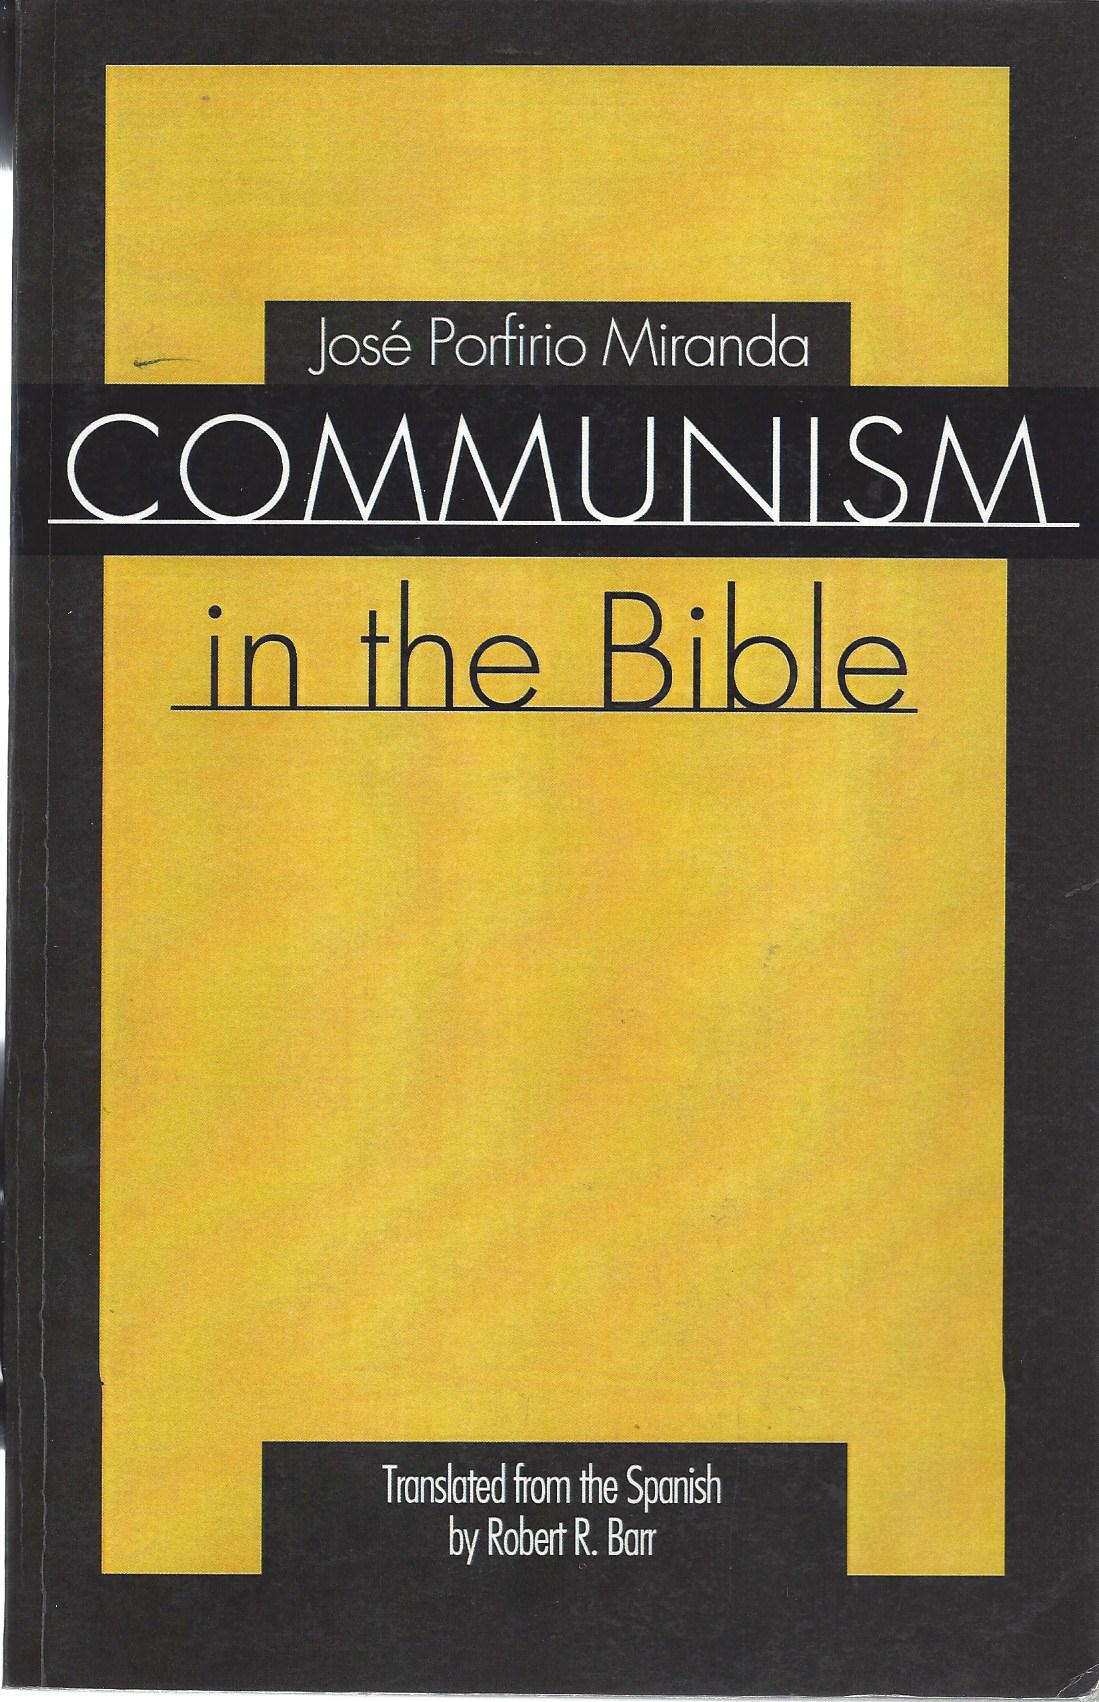 communism-in-the-bible-primera-edici%c2%a2n-publishers-edici%c2%a2n-2004